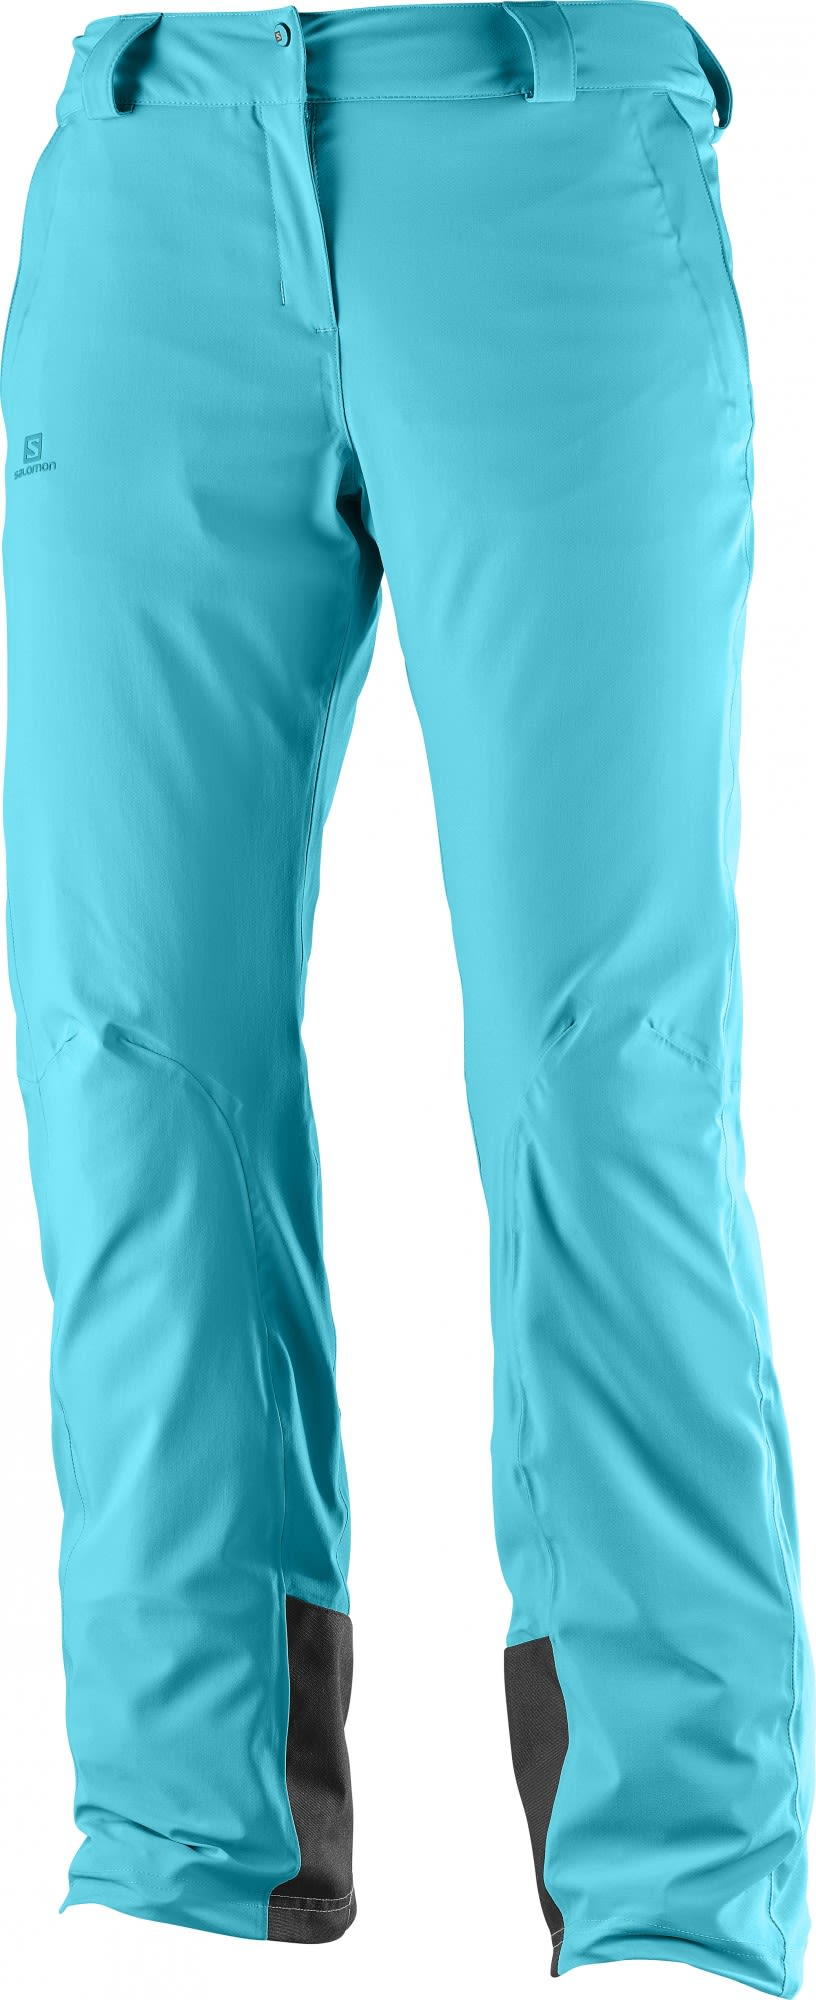 Salomon Icemania Pant (Modell Winter 2017) Blau, Female Hose, M/S